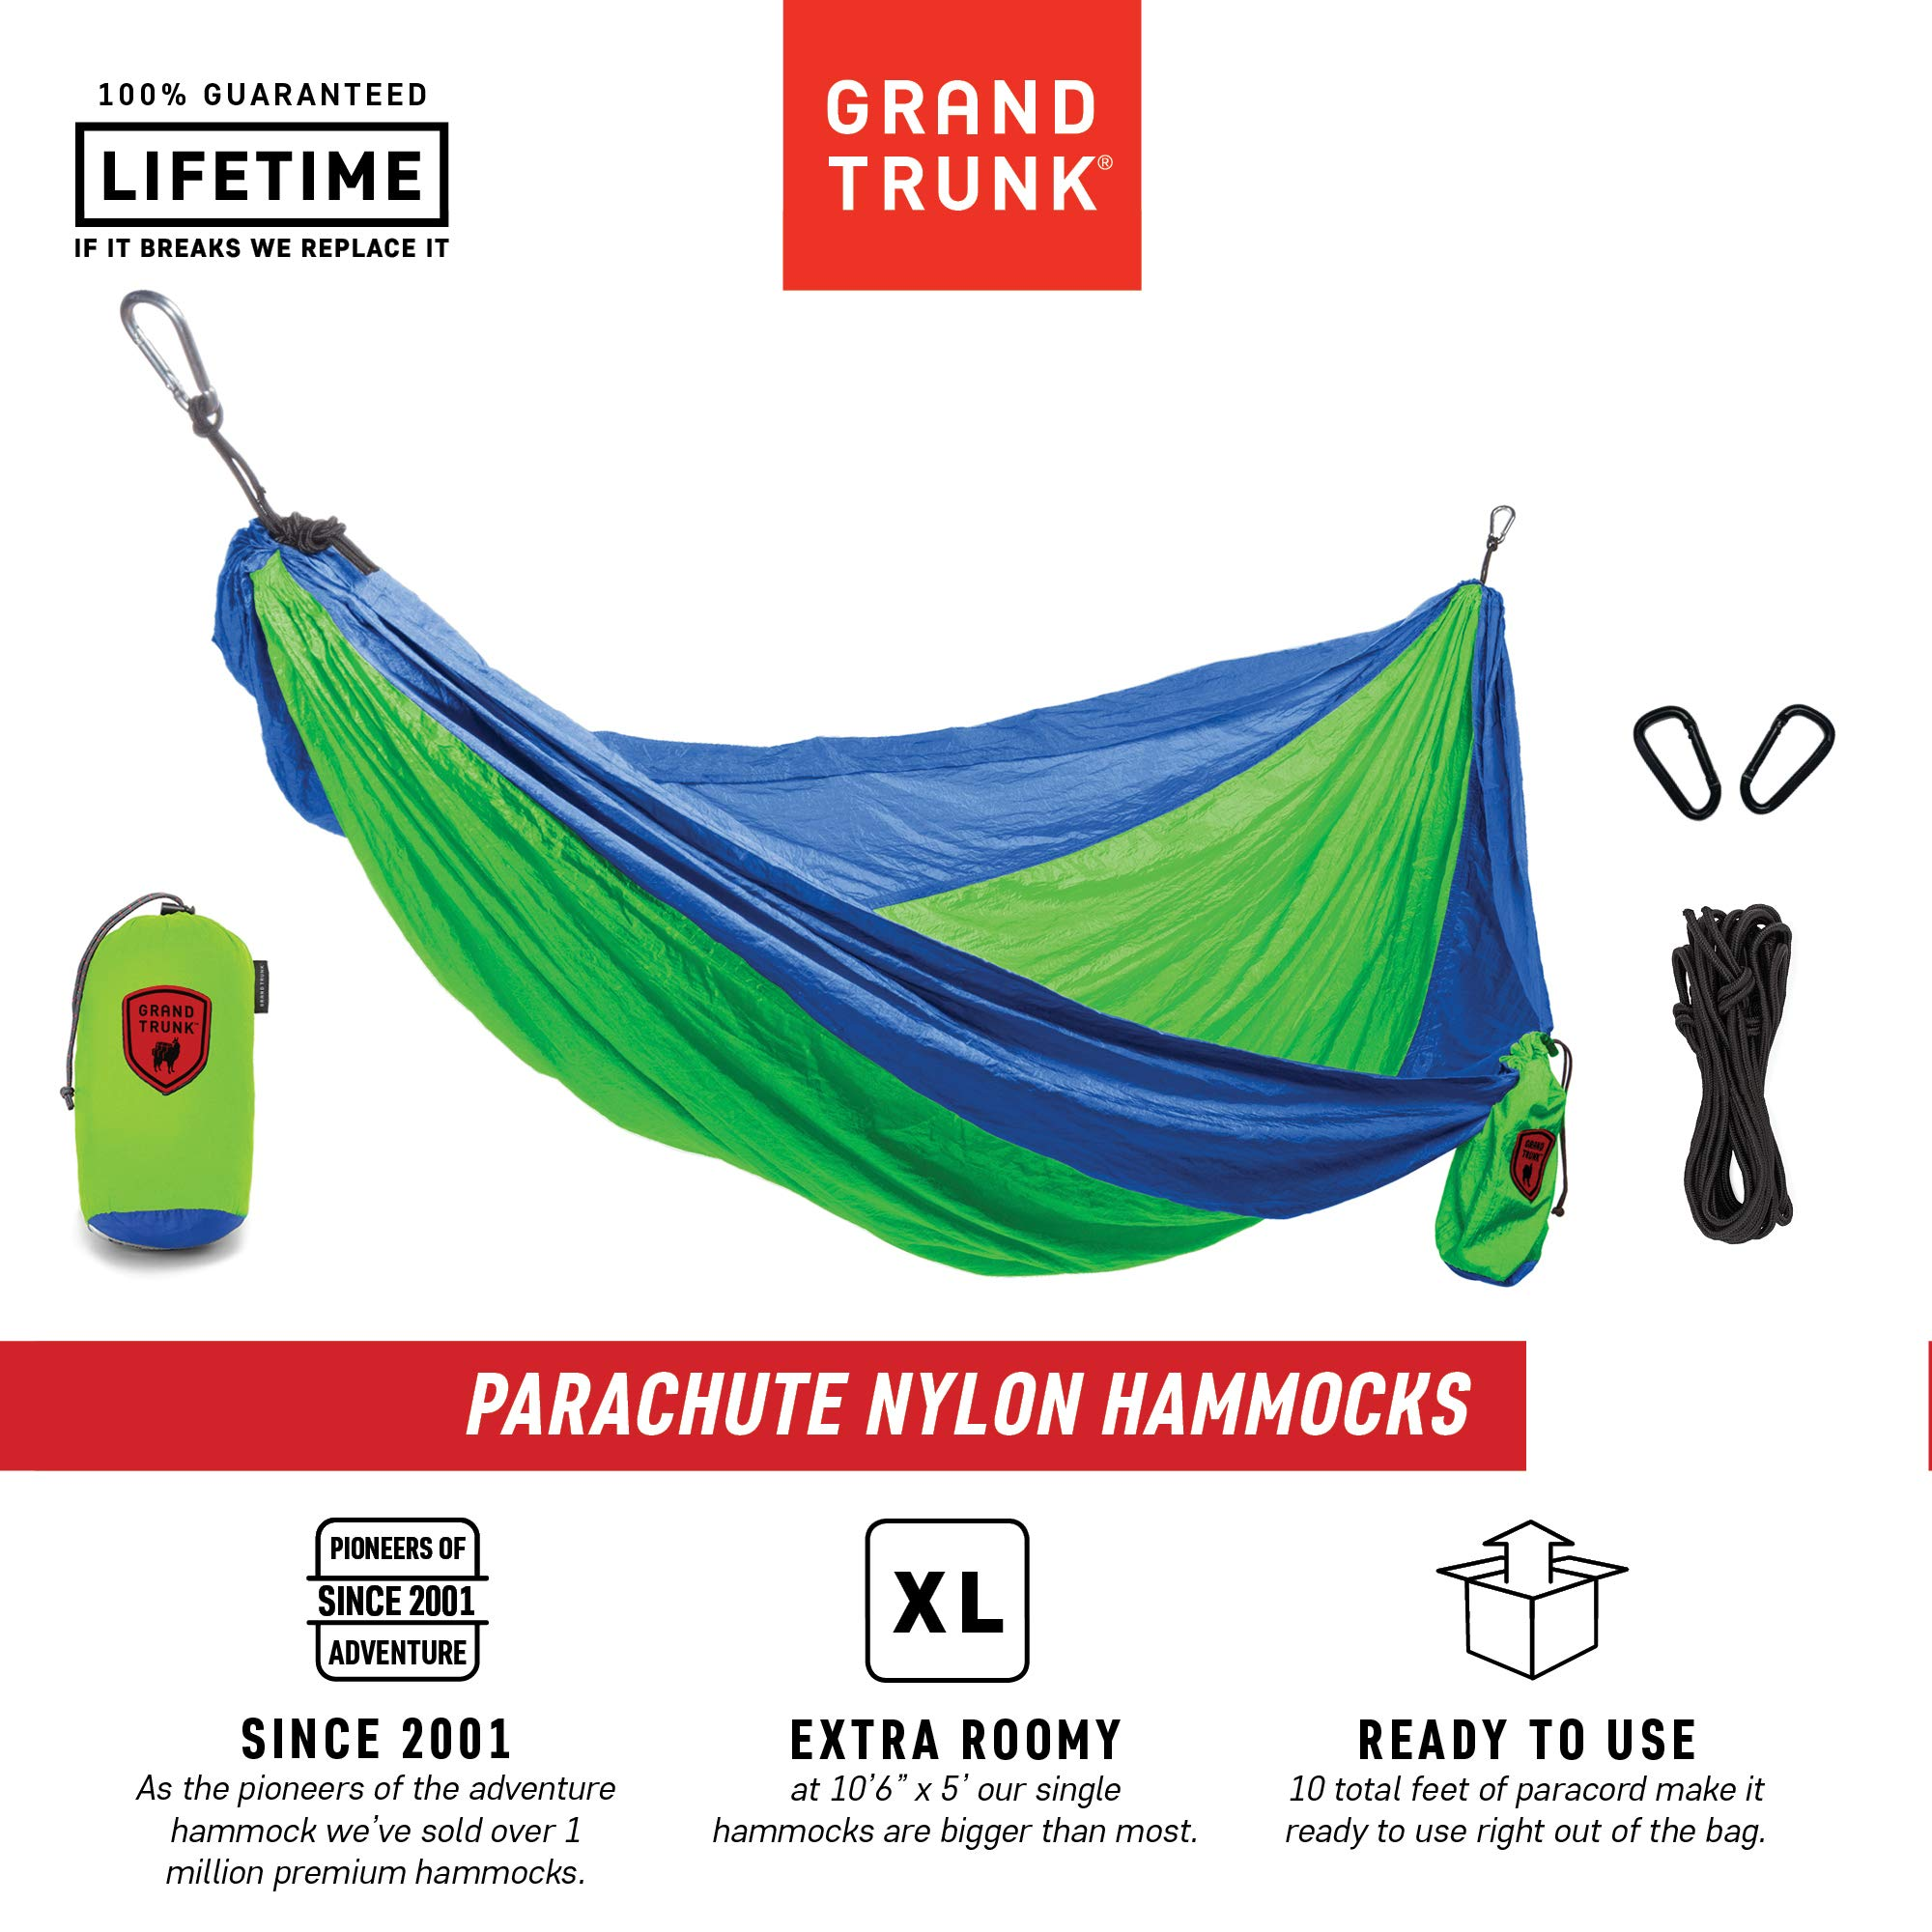 Grand Trunk Hammock- Camping Double with Tree Hanging Kit- Hammocks and Travel Gear Pioneers Since 2001 Parachute Nylon, Portable, Indoor Outdoor, Backpacking, Survival, Blue/Lime